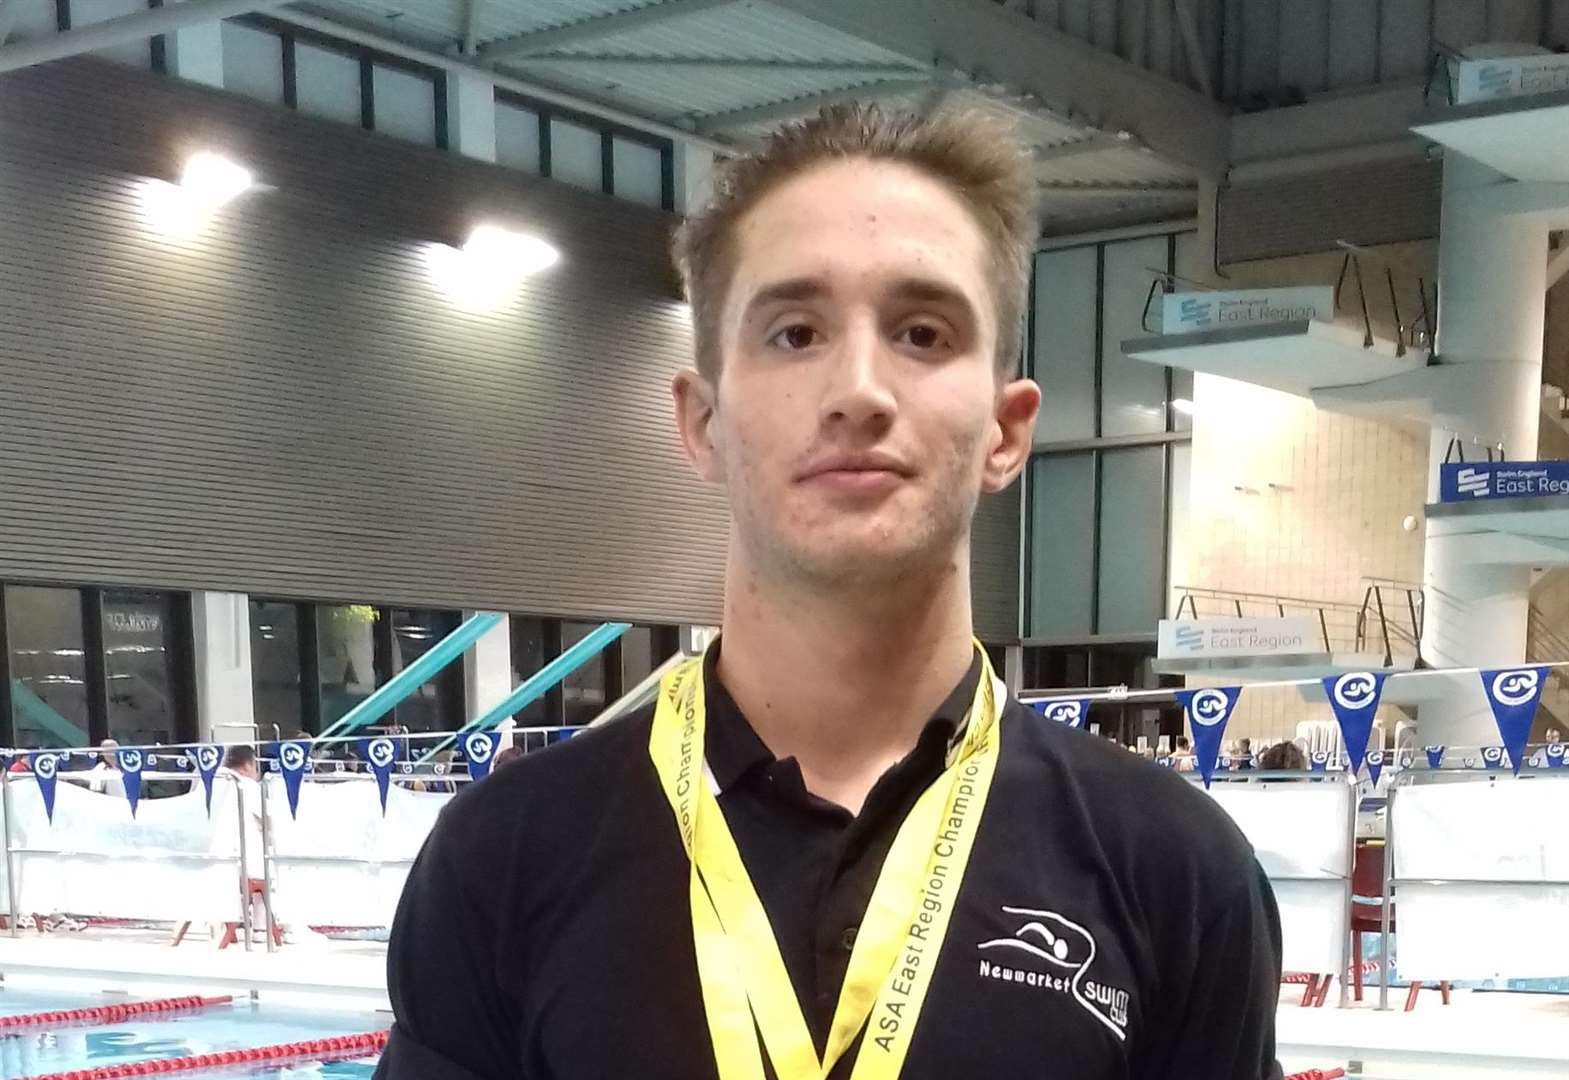 Two medals for Larghero